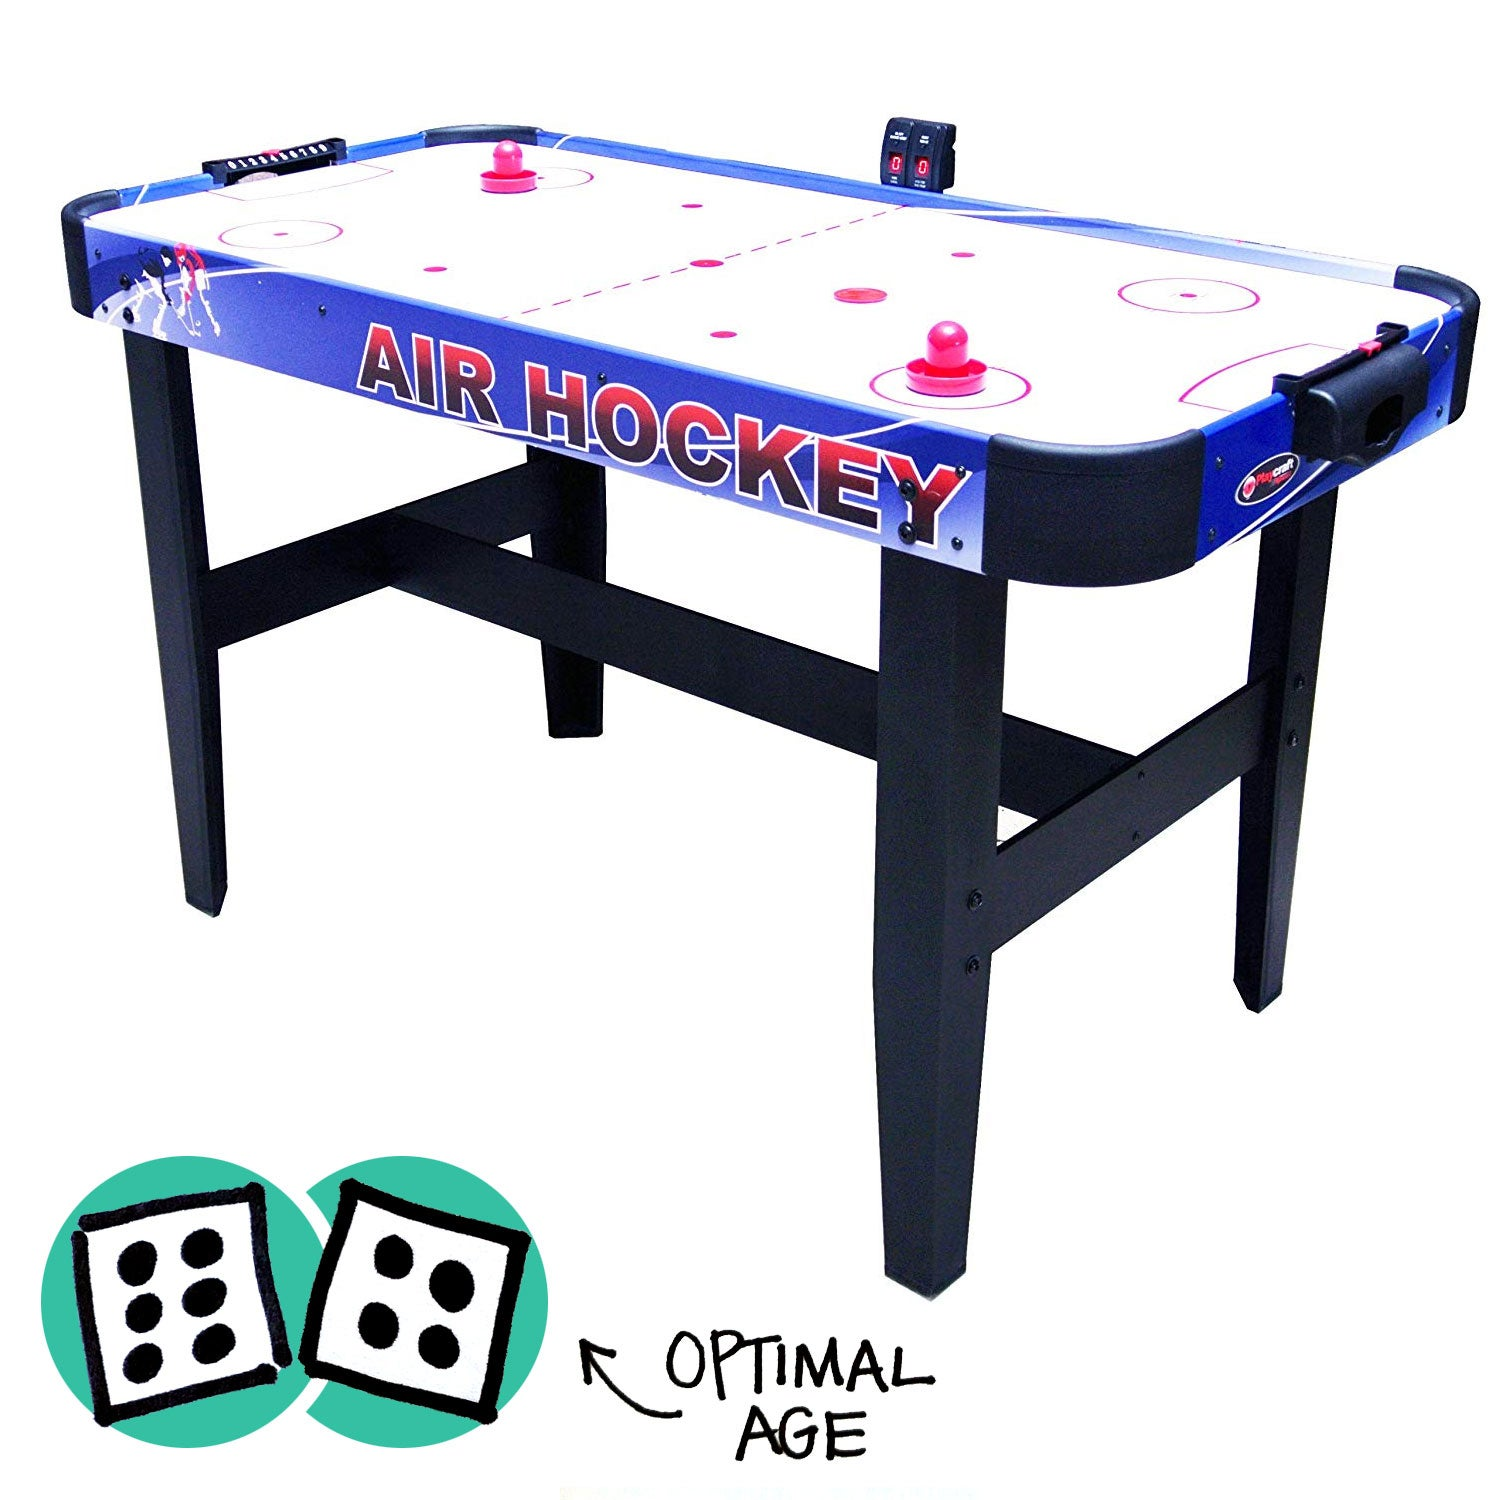 "Playcraft Sport 54"" Air Hockey Table."